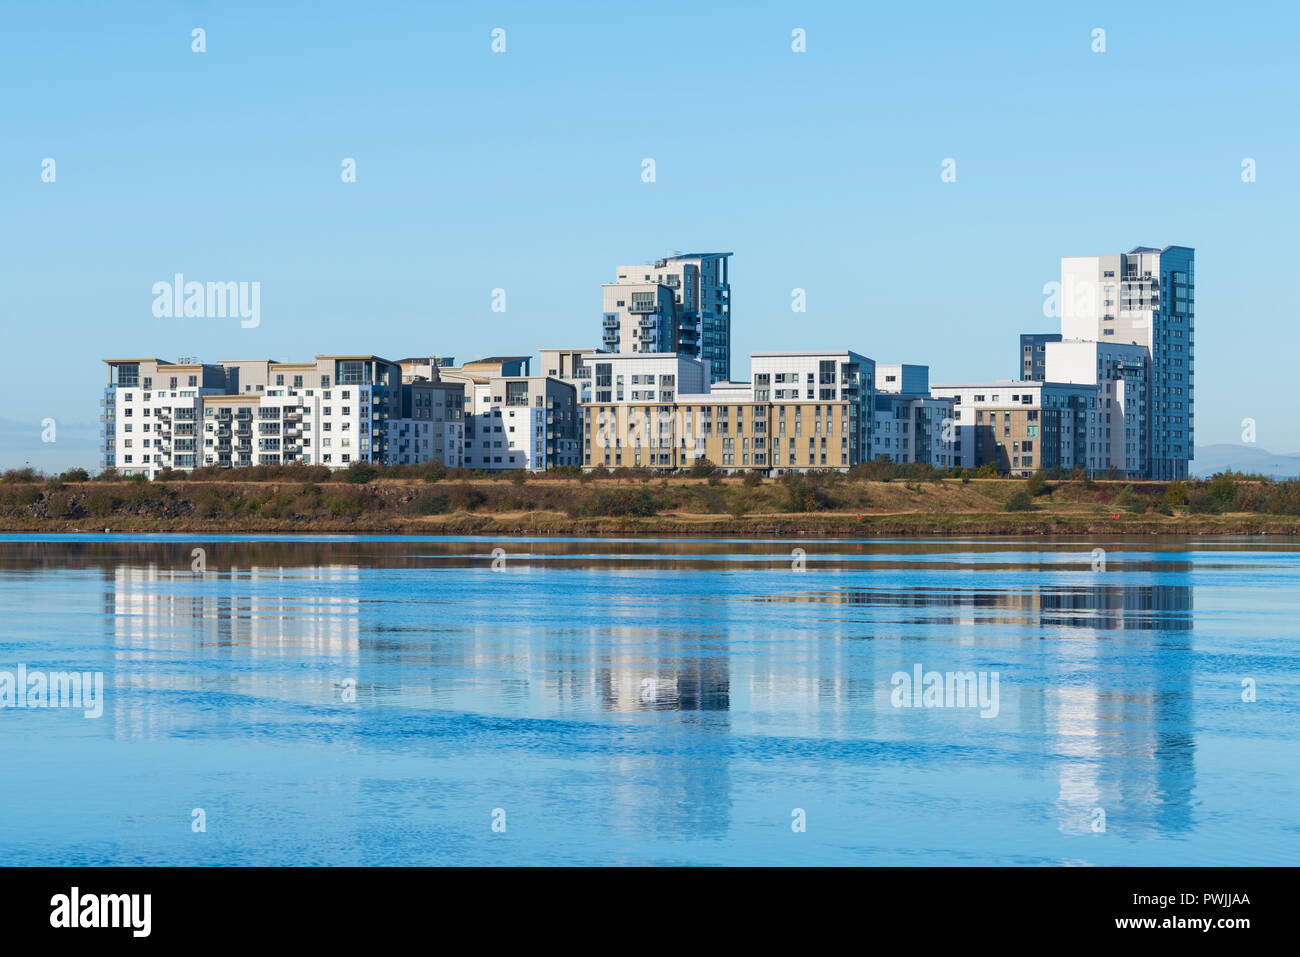 View of modern apartment buildings at Western Harbour housing development in Leith, Scotland, UK - Stock Image